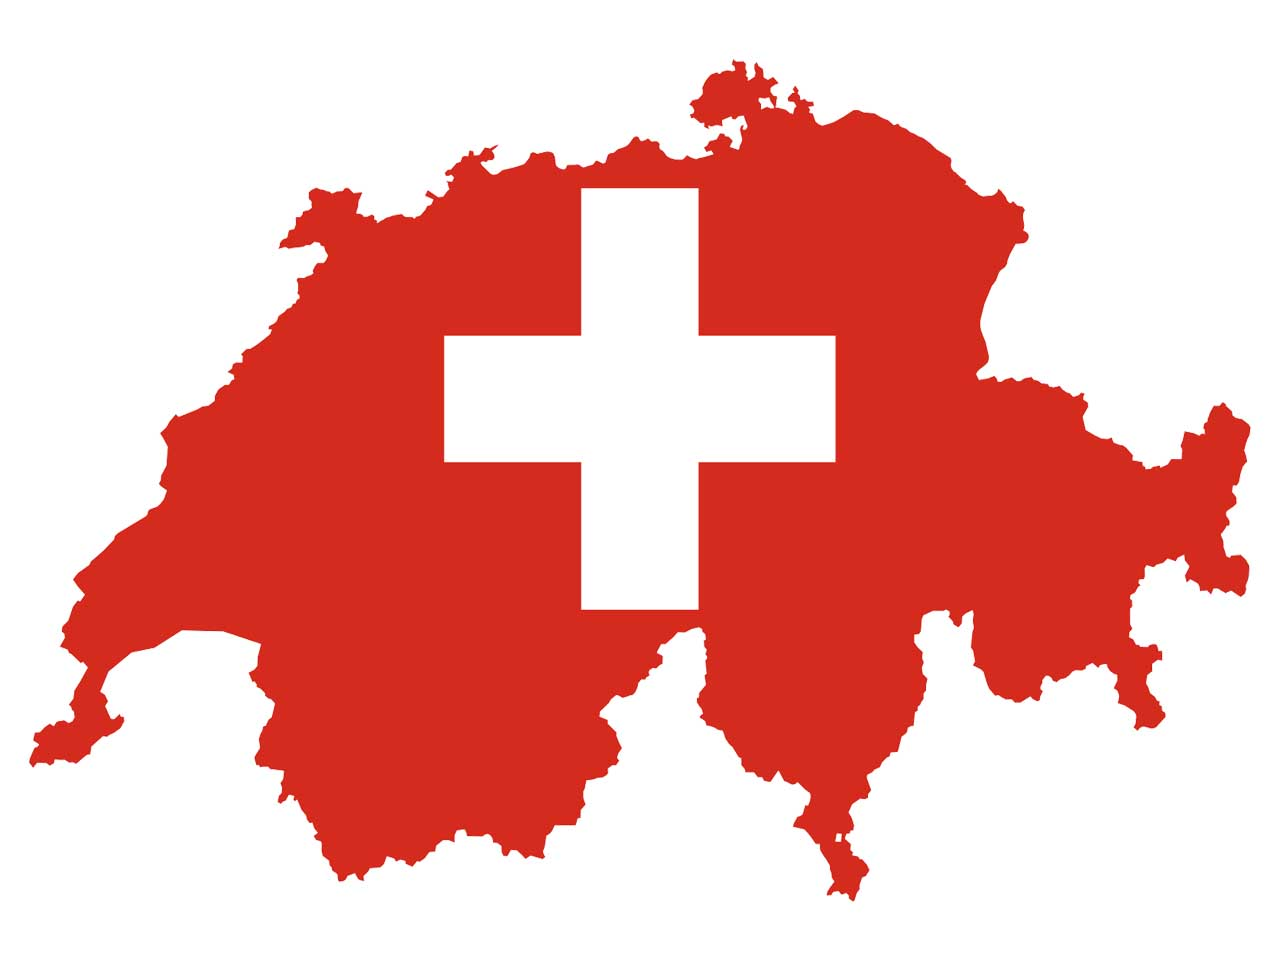 Until 1971, women didn't have the right to vote in Switzerland.